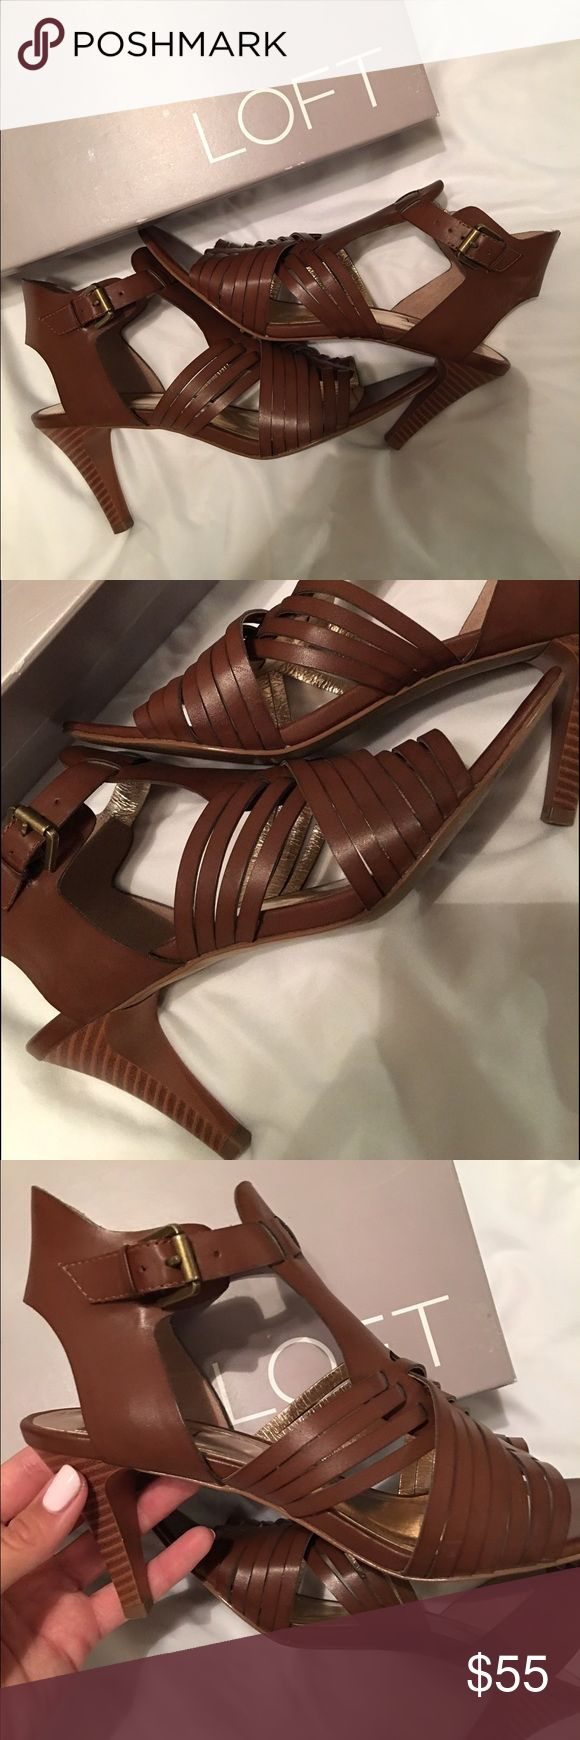 1000 Ideas About Brown Leather Sandals On Pinterest